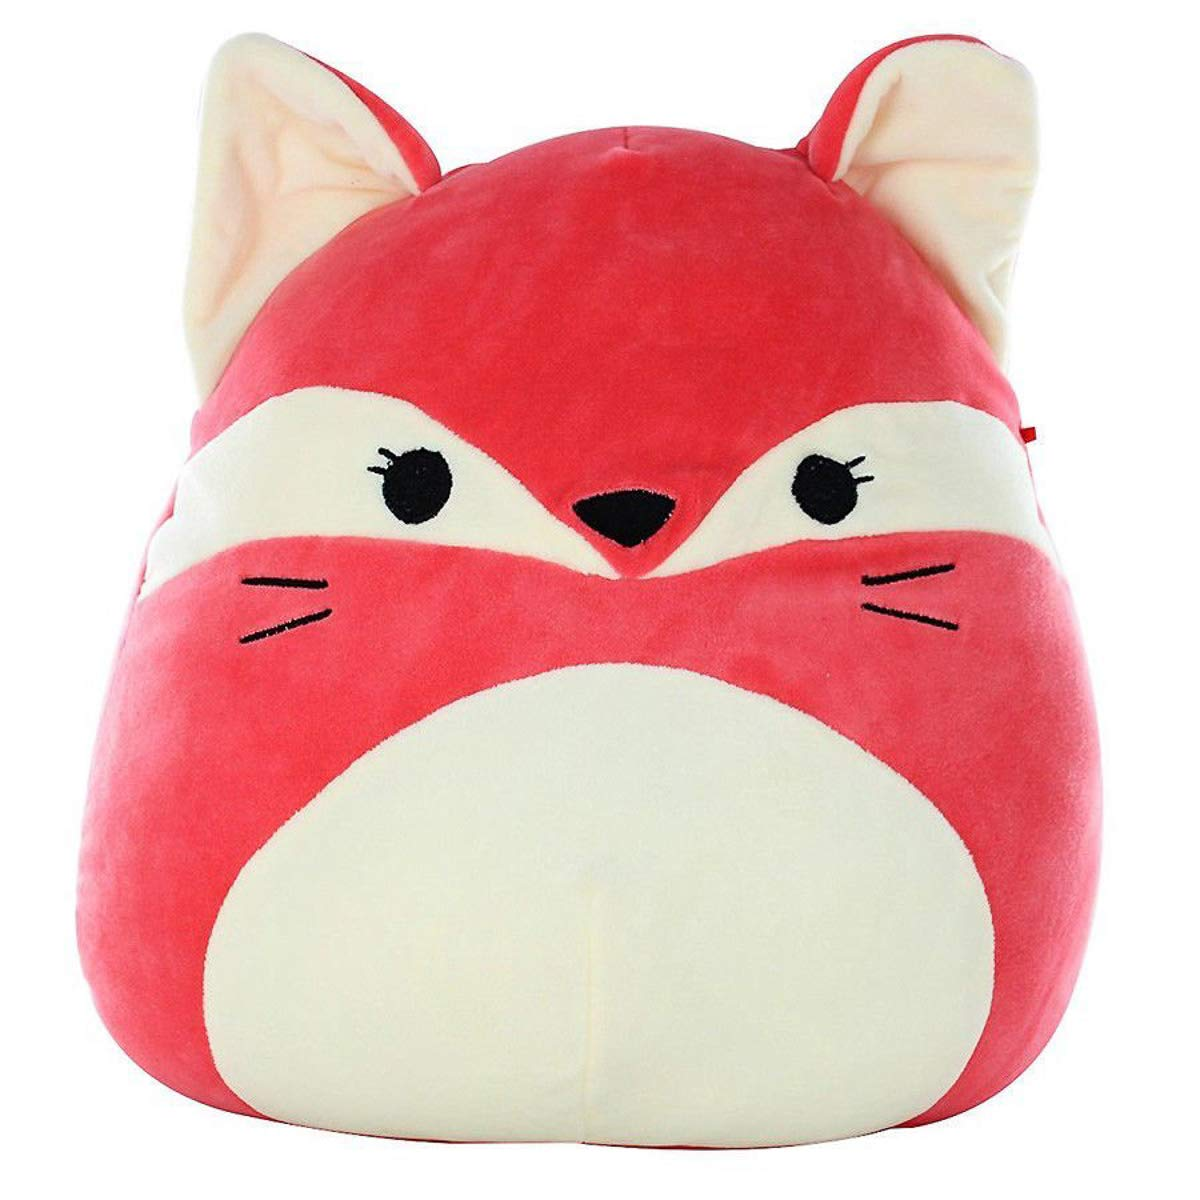 SQUISHMALLOW Fifi The Fox Pillow Stuffed Animal, Red, 16